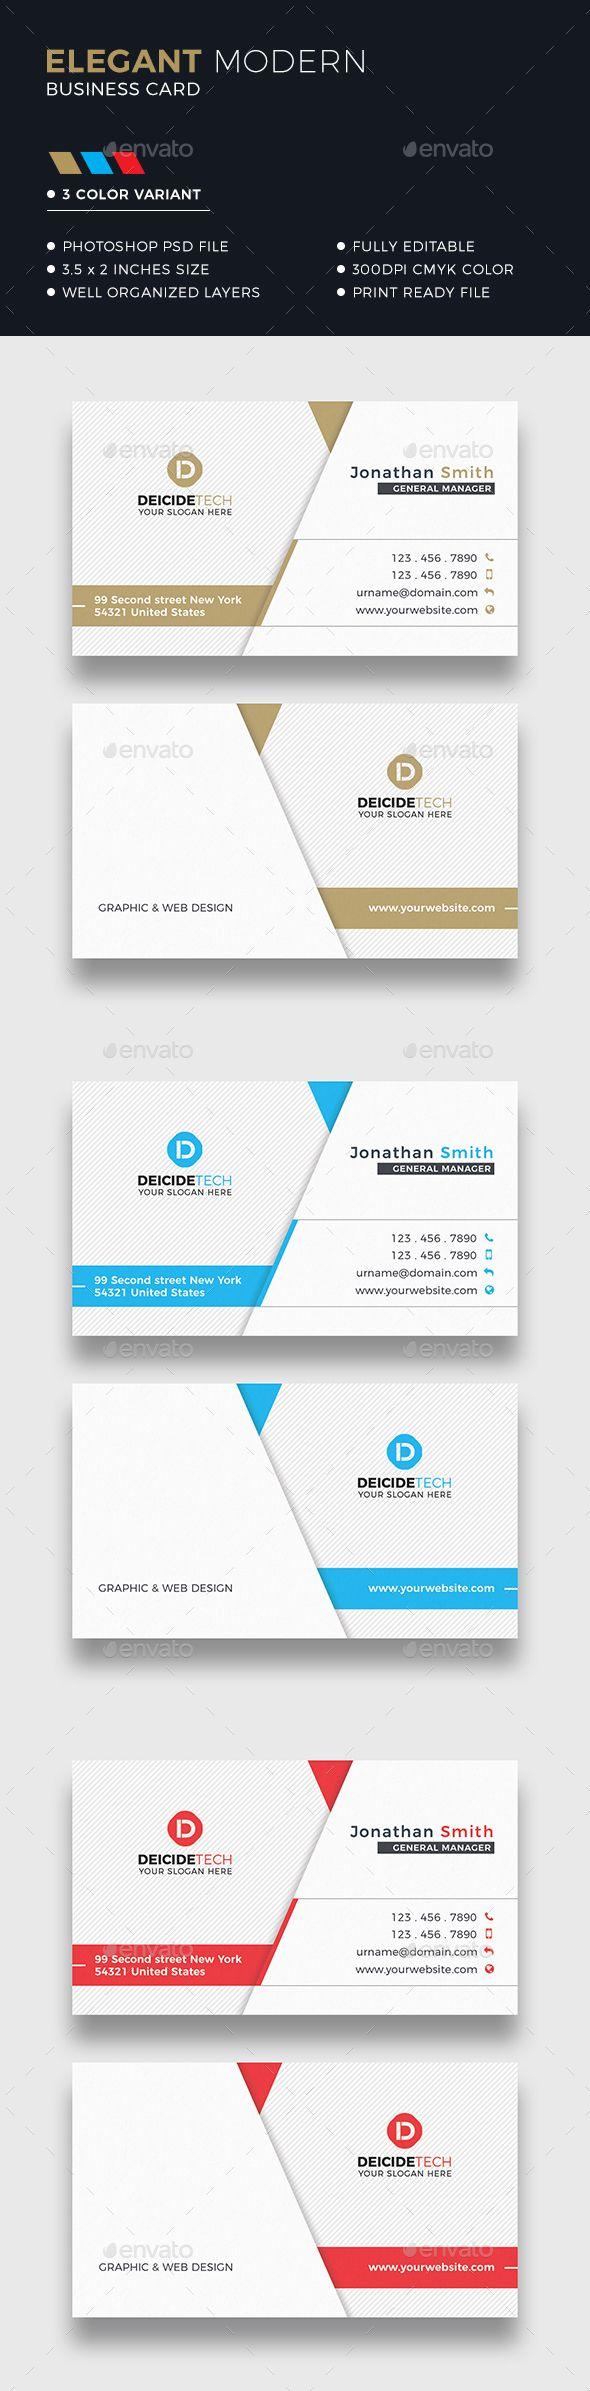 Corporate Business Card by Dkgray Corporate business card made for companies or personal use. FEATURES 300DPI CMYK Color Print ready Horizontal align3.75脳2.25 in wi